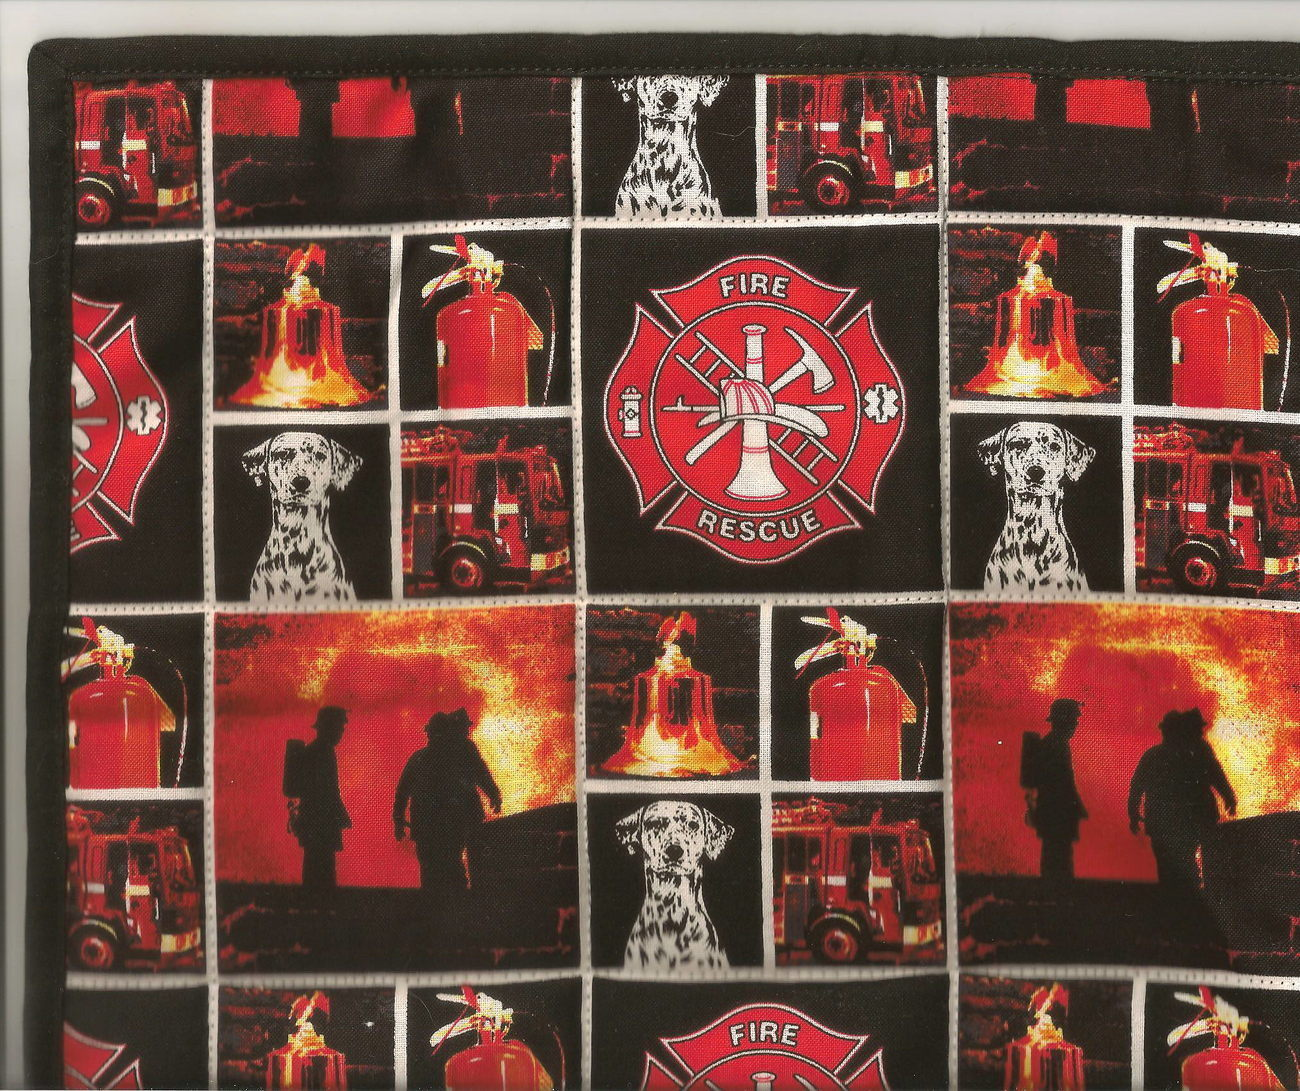 Firefighter_placemat_6